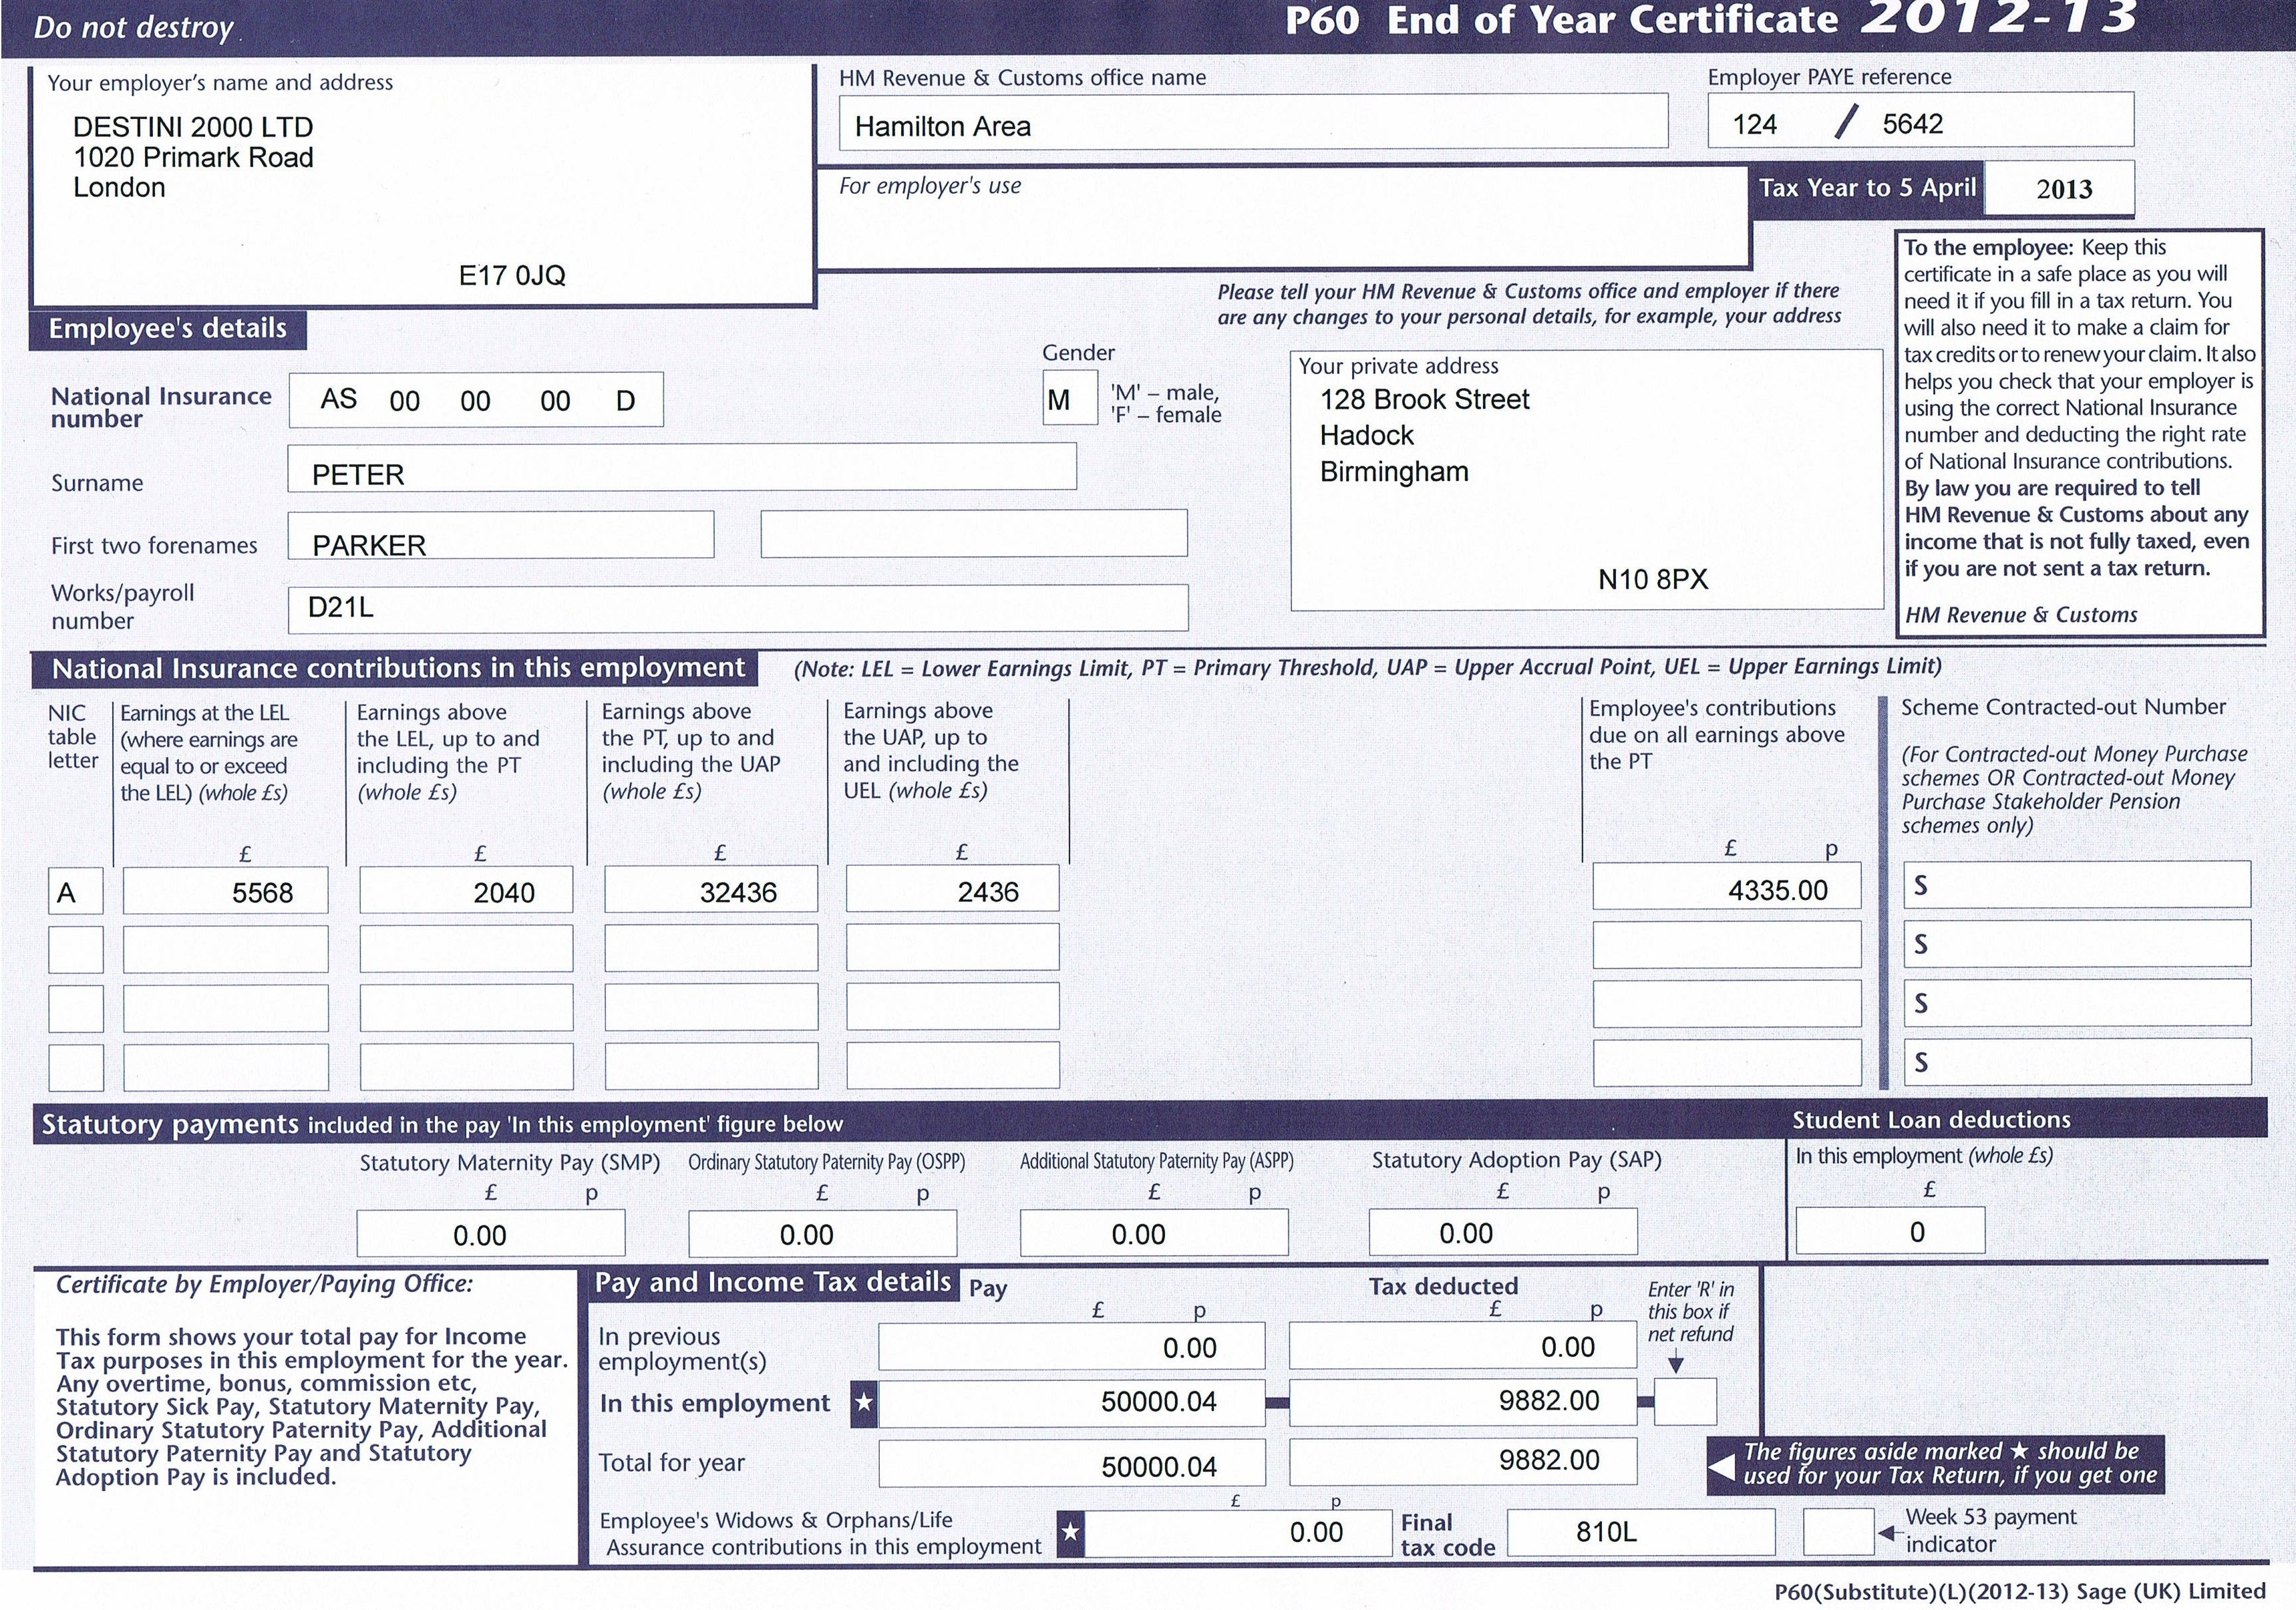 Buy Lost or Damage Payslips Online at Lowest Price in UK